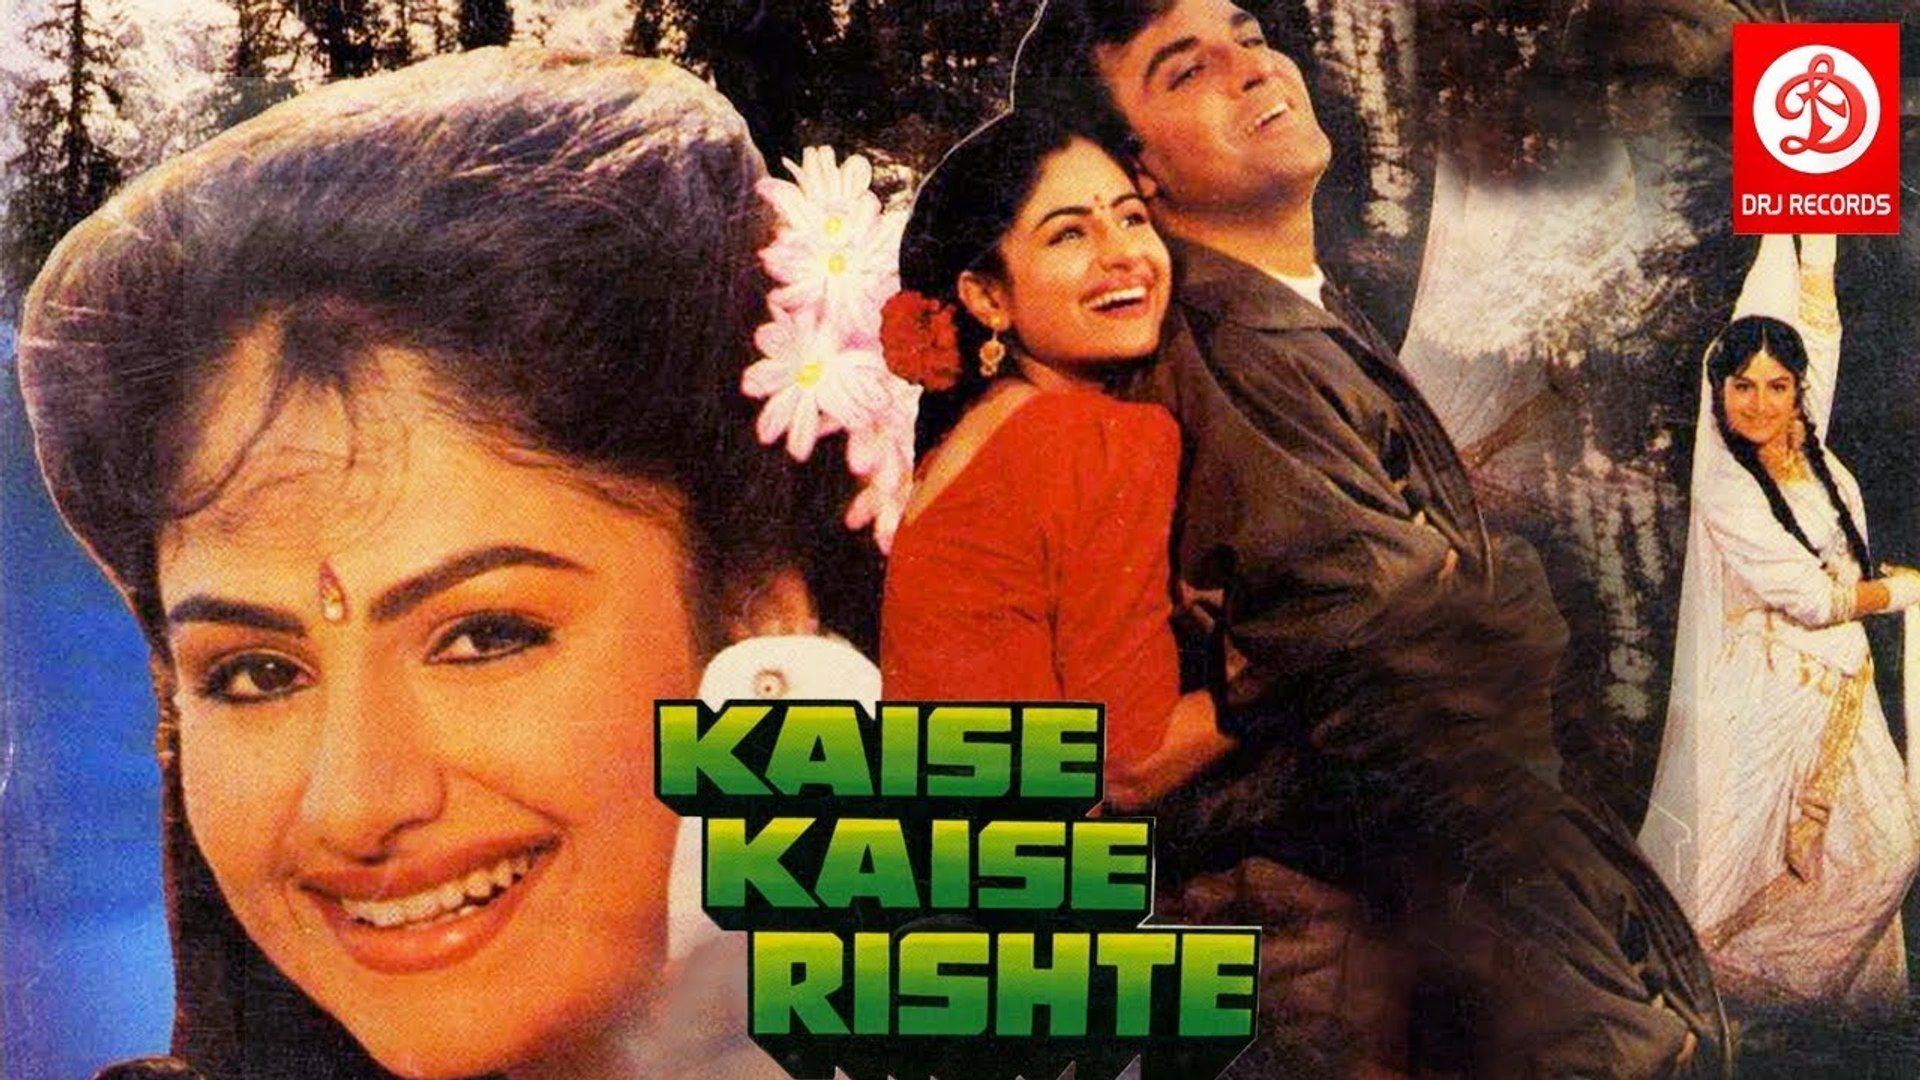 Kaise Kaise Rishte | Hindi Full Movie | Ayesha Jhulka, shahbaz khan, Kiran kumar, shakti kapoor | Bo